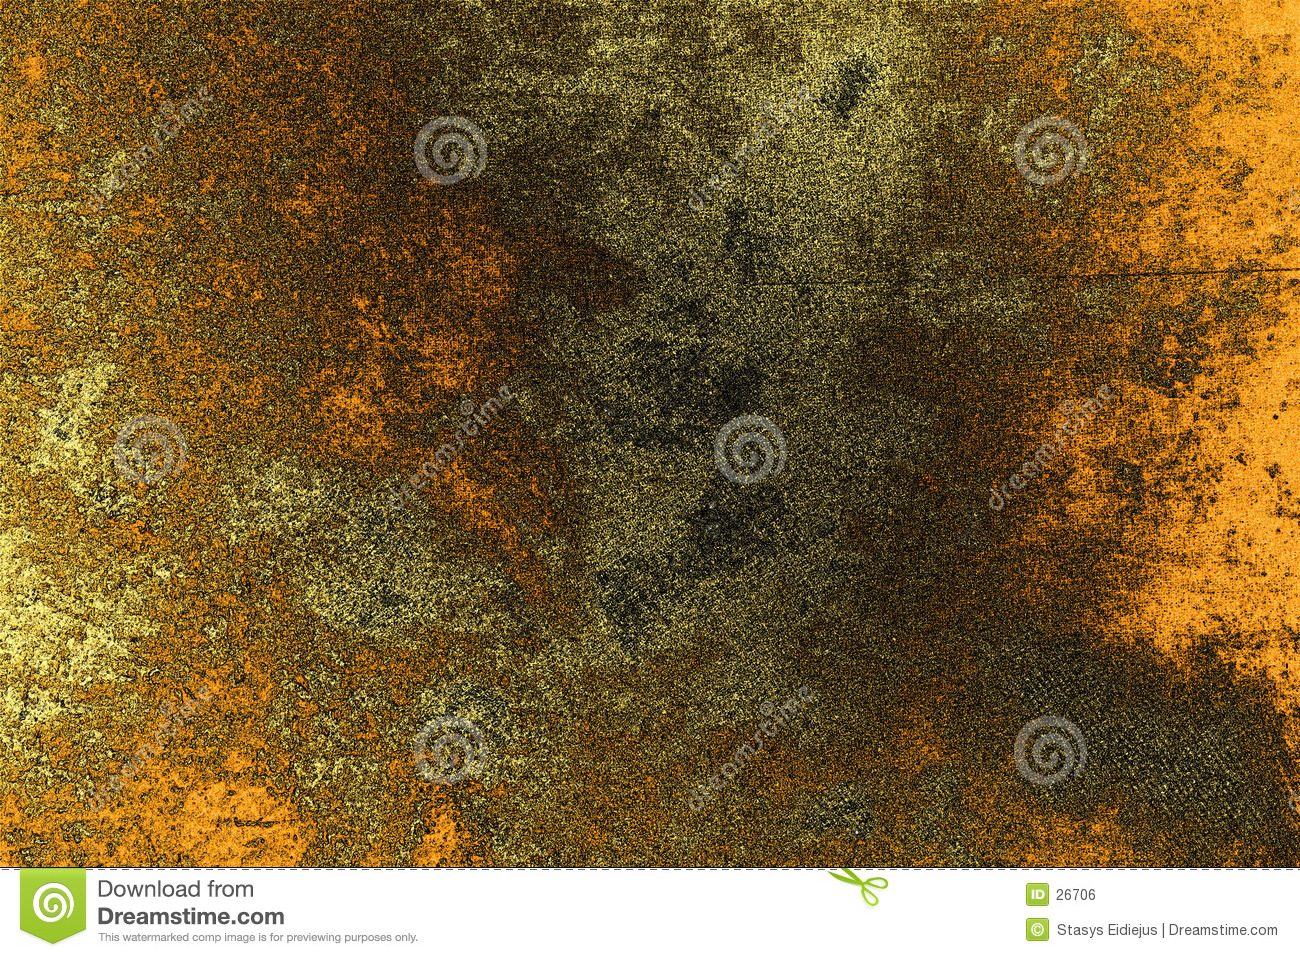 Really rusty & grungy texture